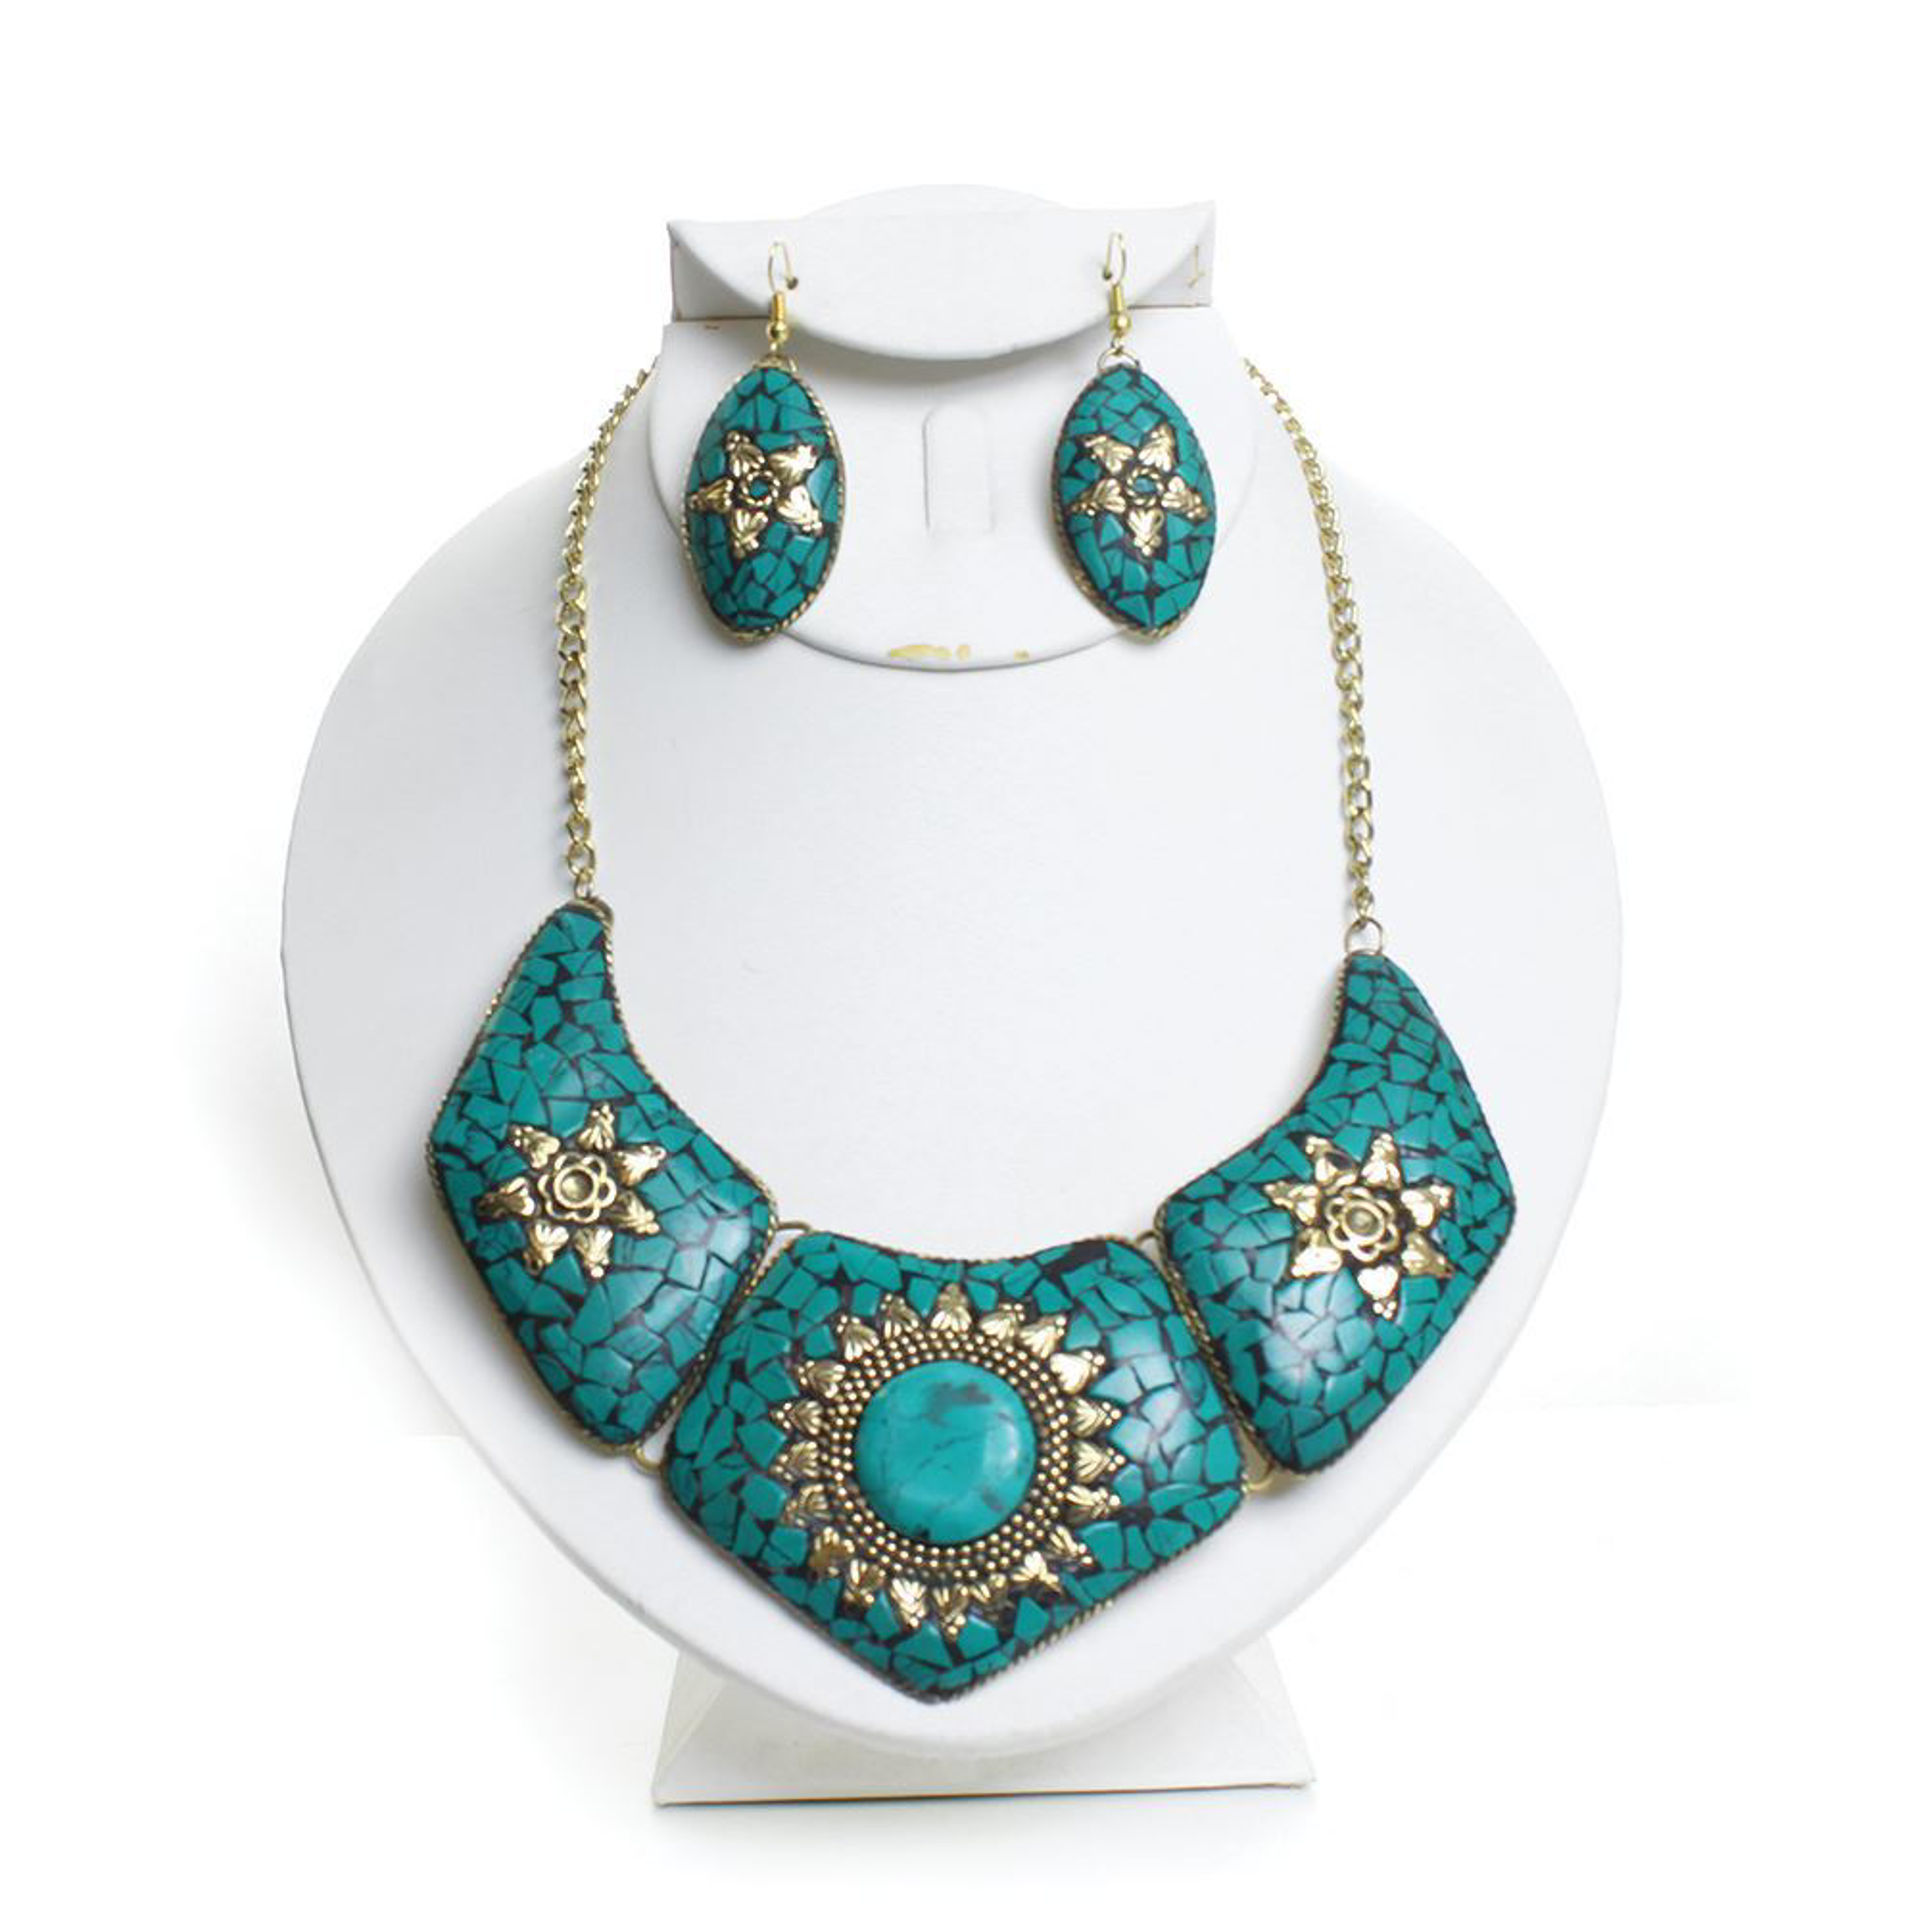 Picture of Queen Nefertiti Turquoise Necklace Set